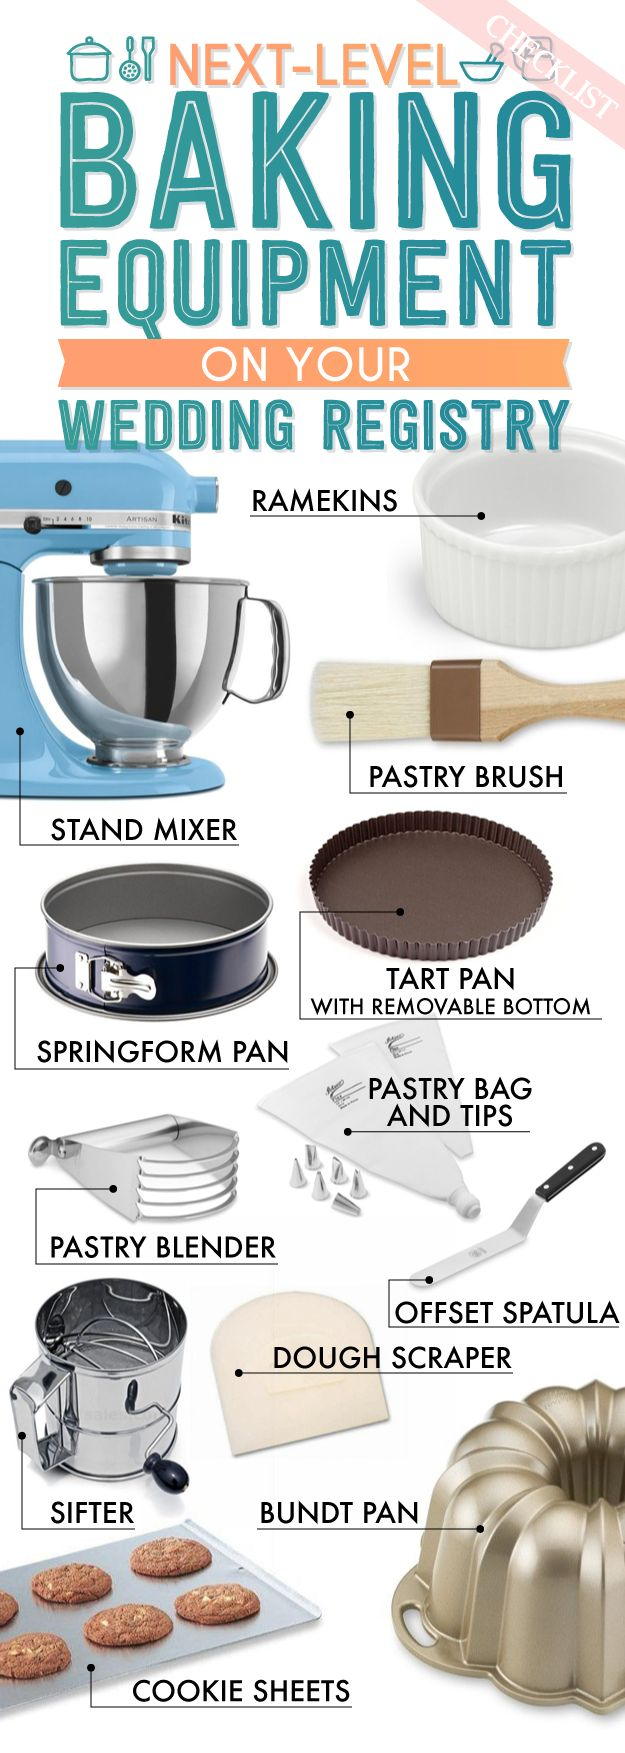 Never heard of a bundt pan? It's time to do your research! Your wedding registry is the perfect place to stock up on new baking equipment for your new home! Take a look at this visual checklist from Buzzfeed and make sure you registered for everything you need!